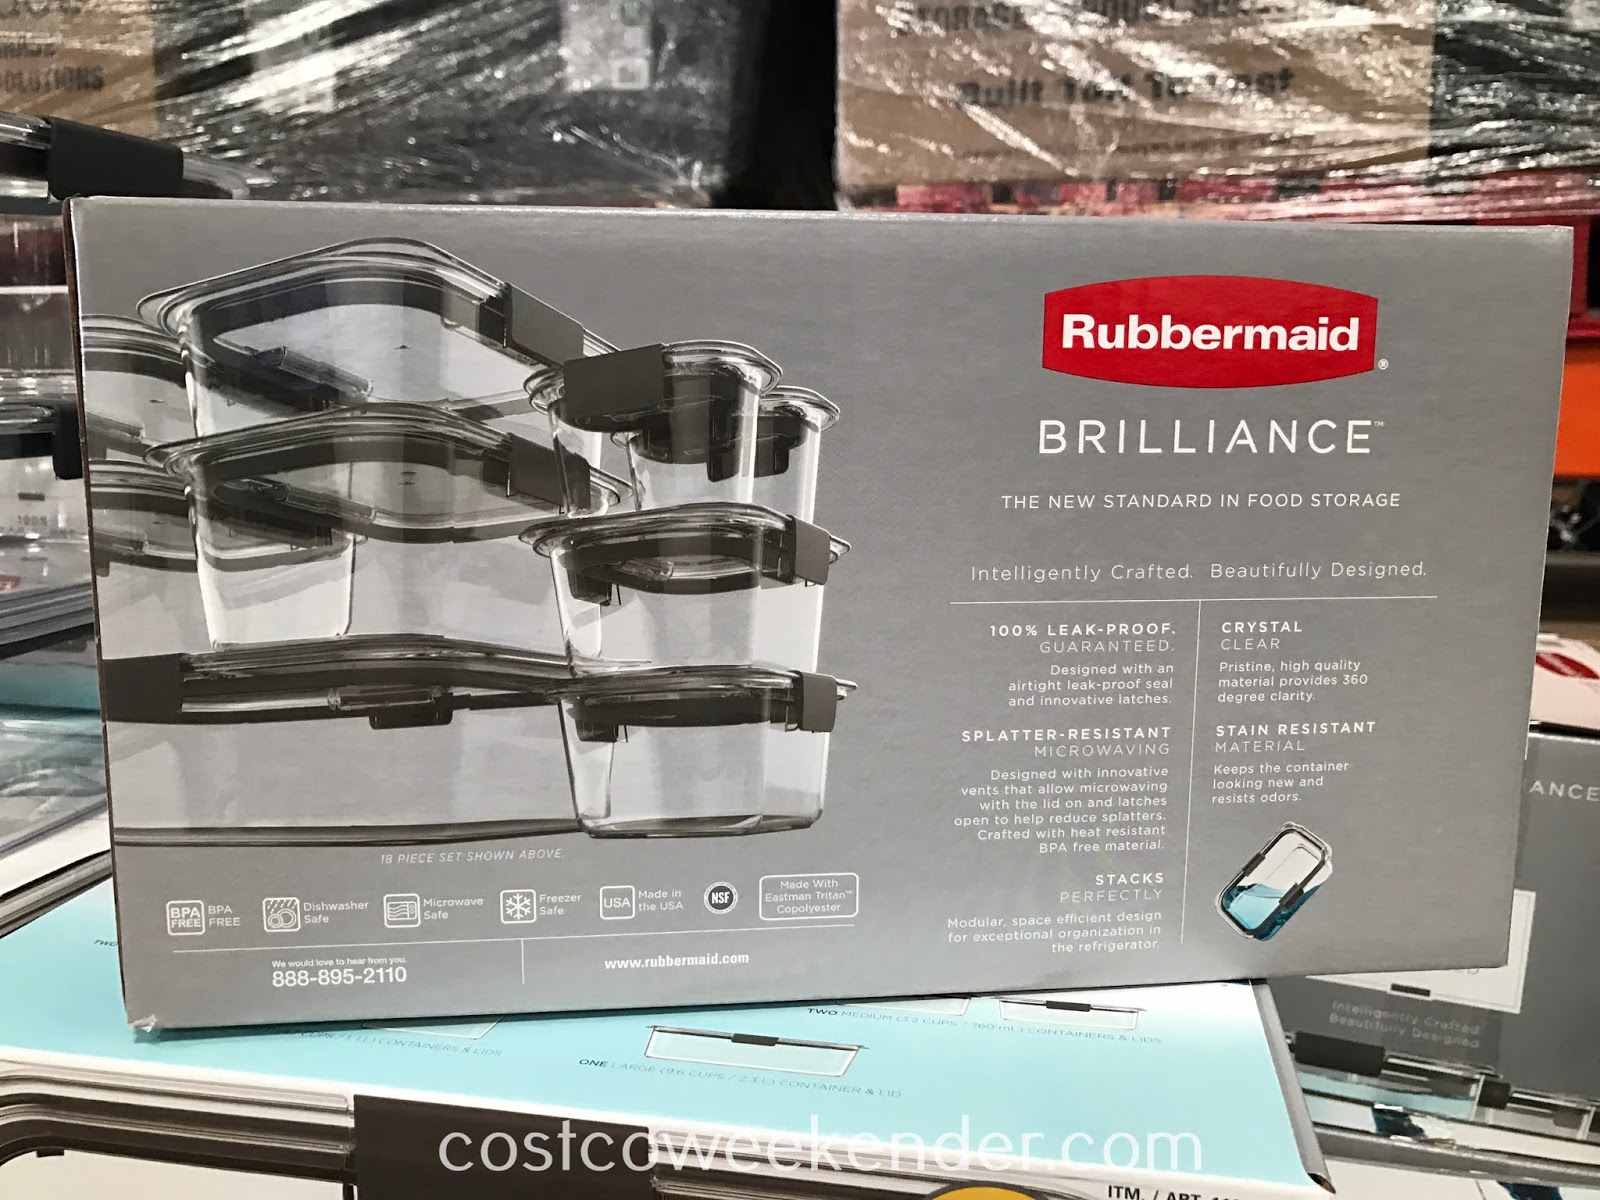 Rubbermaid Brilliance 18-piece Food Storage Set: great for leftovers